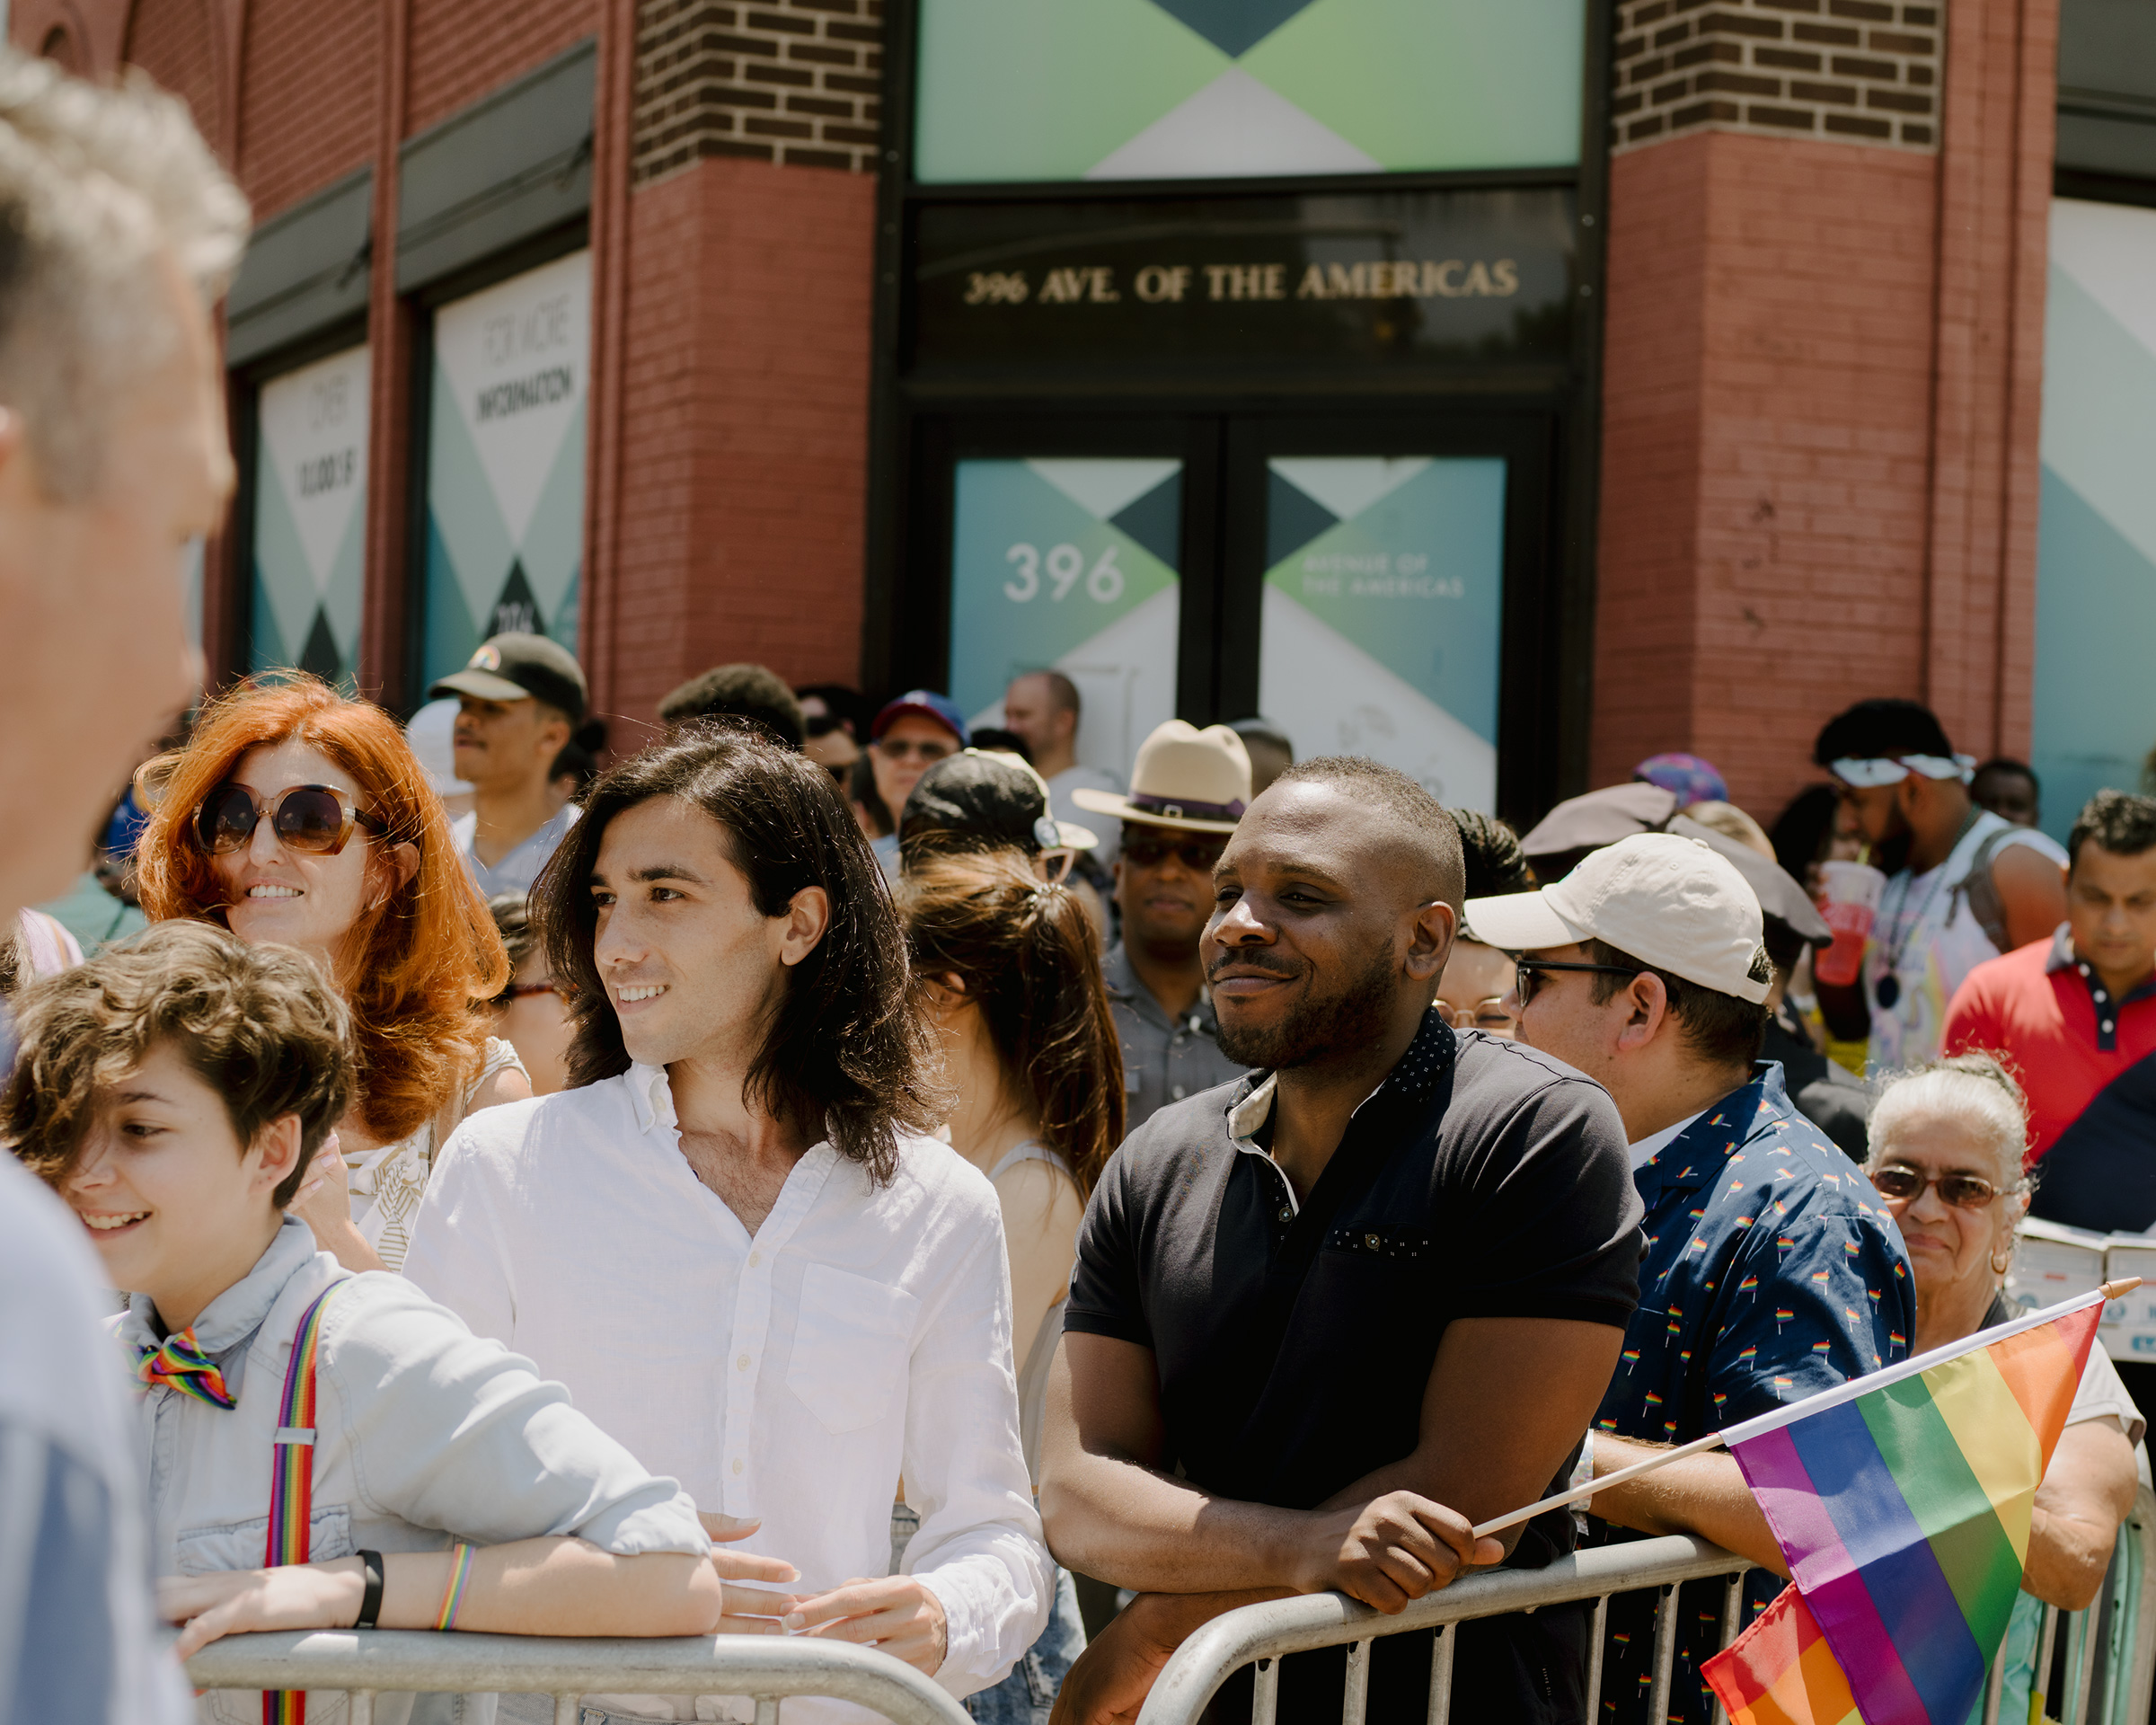 Amin Dzhabrailov and Kimahli Powell, executive director of the Rainbow Railroad organization, watch the Pride parade in New York on June 30, 2019.